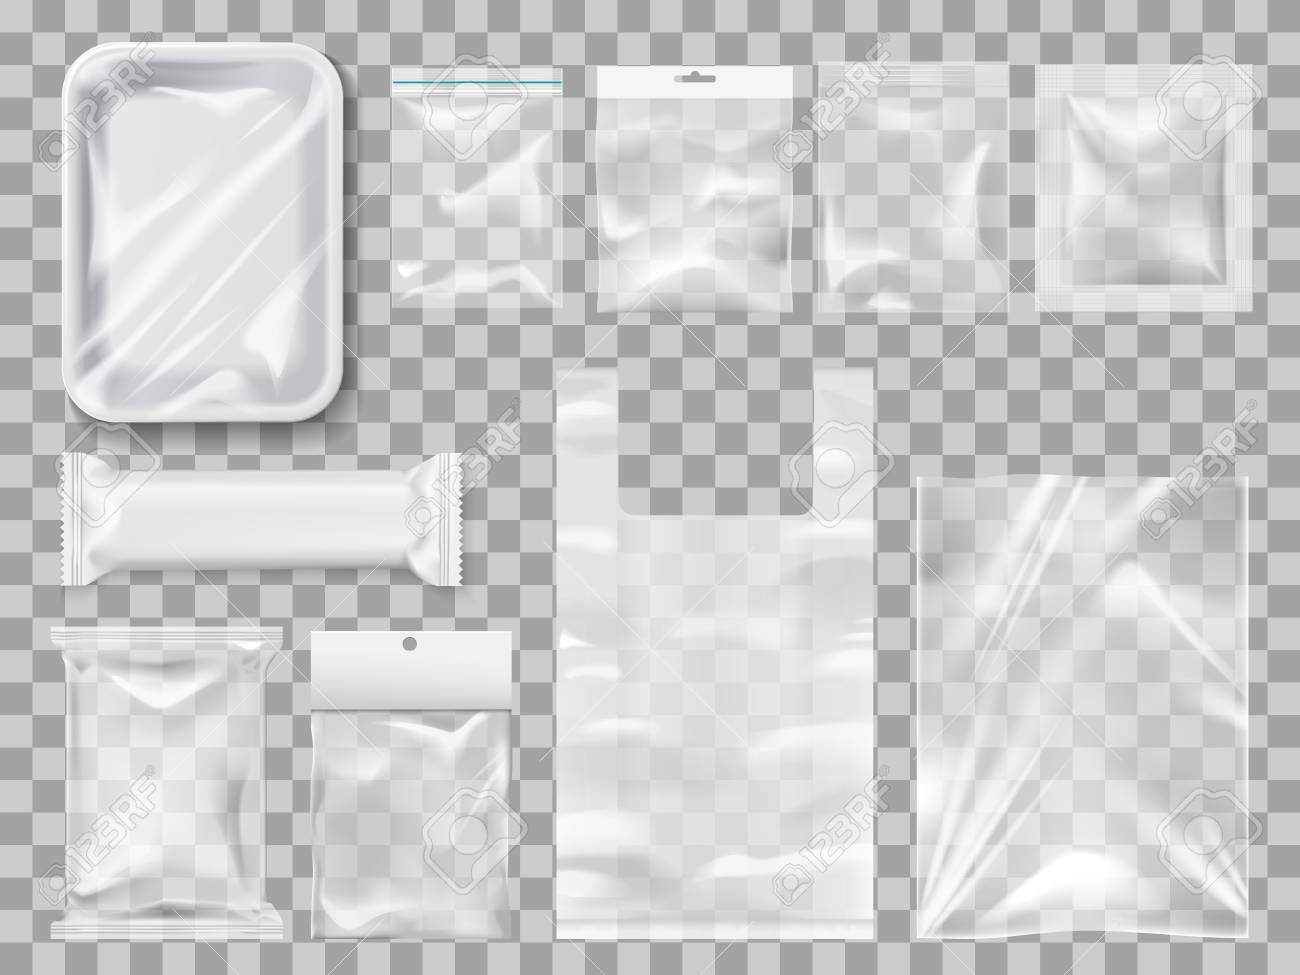 Empty packs, plastic package and vacuum containers mockups for food. Transparent disposable clean packages for meat and chocolate bar, spices and pastry. Transparent packets to carry and keep goods - 112961416